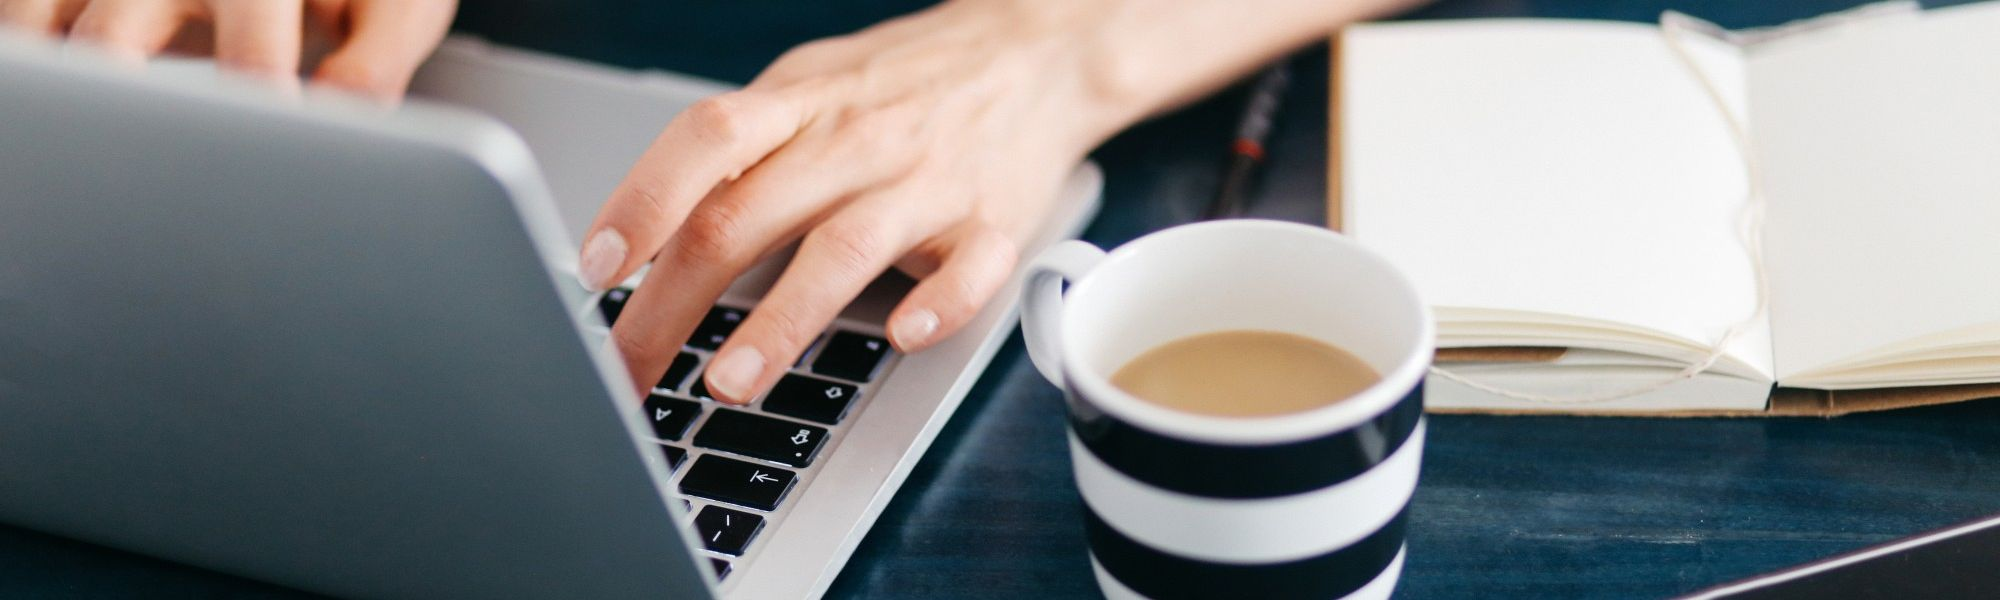 Woman typing on a laptop next to a cup full of coffee